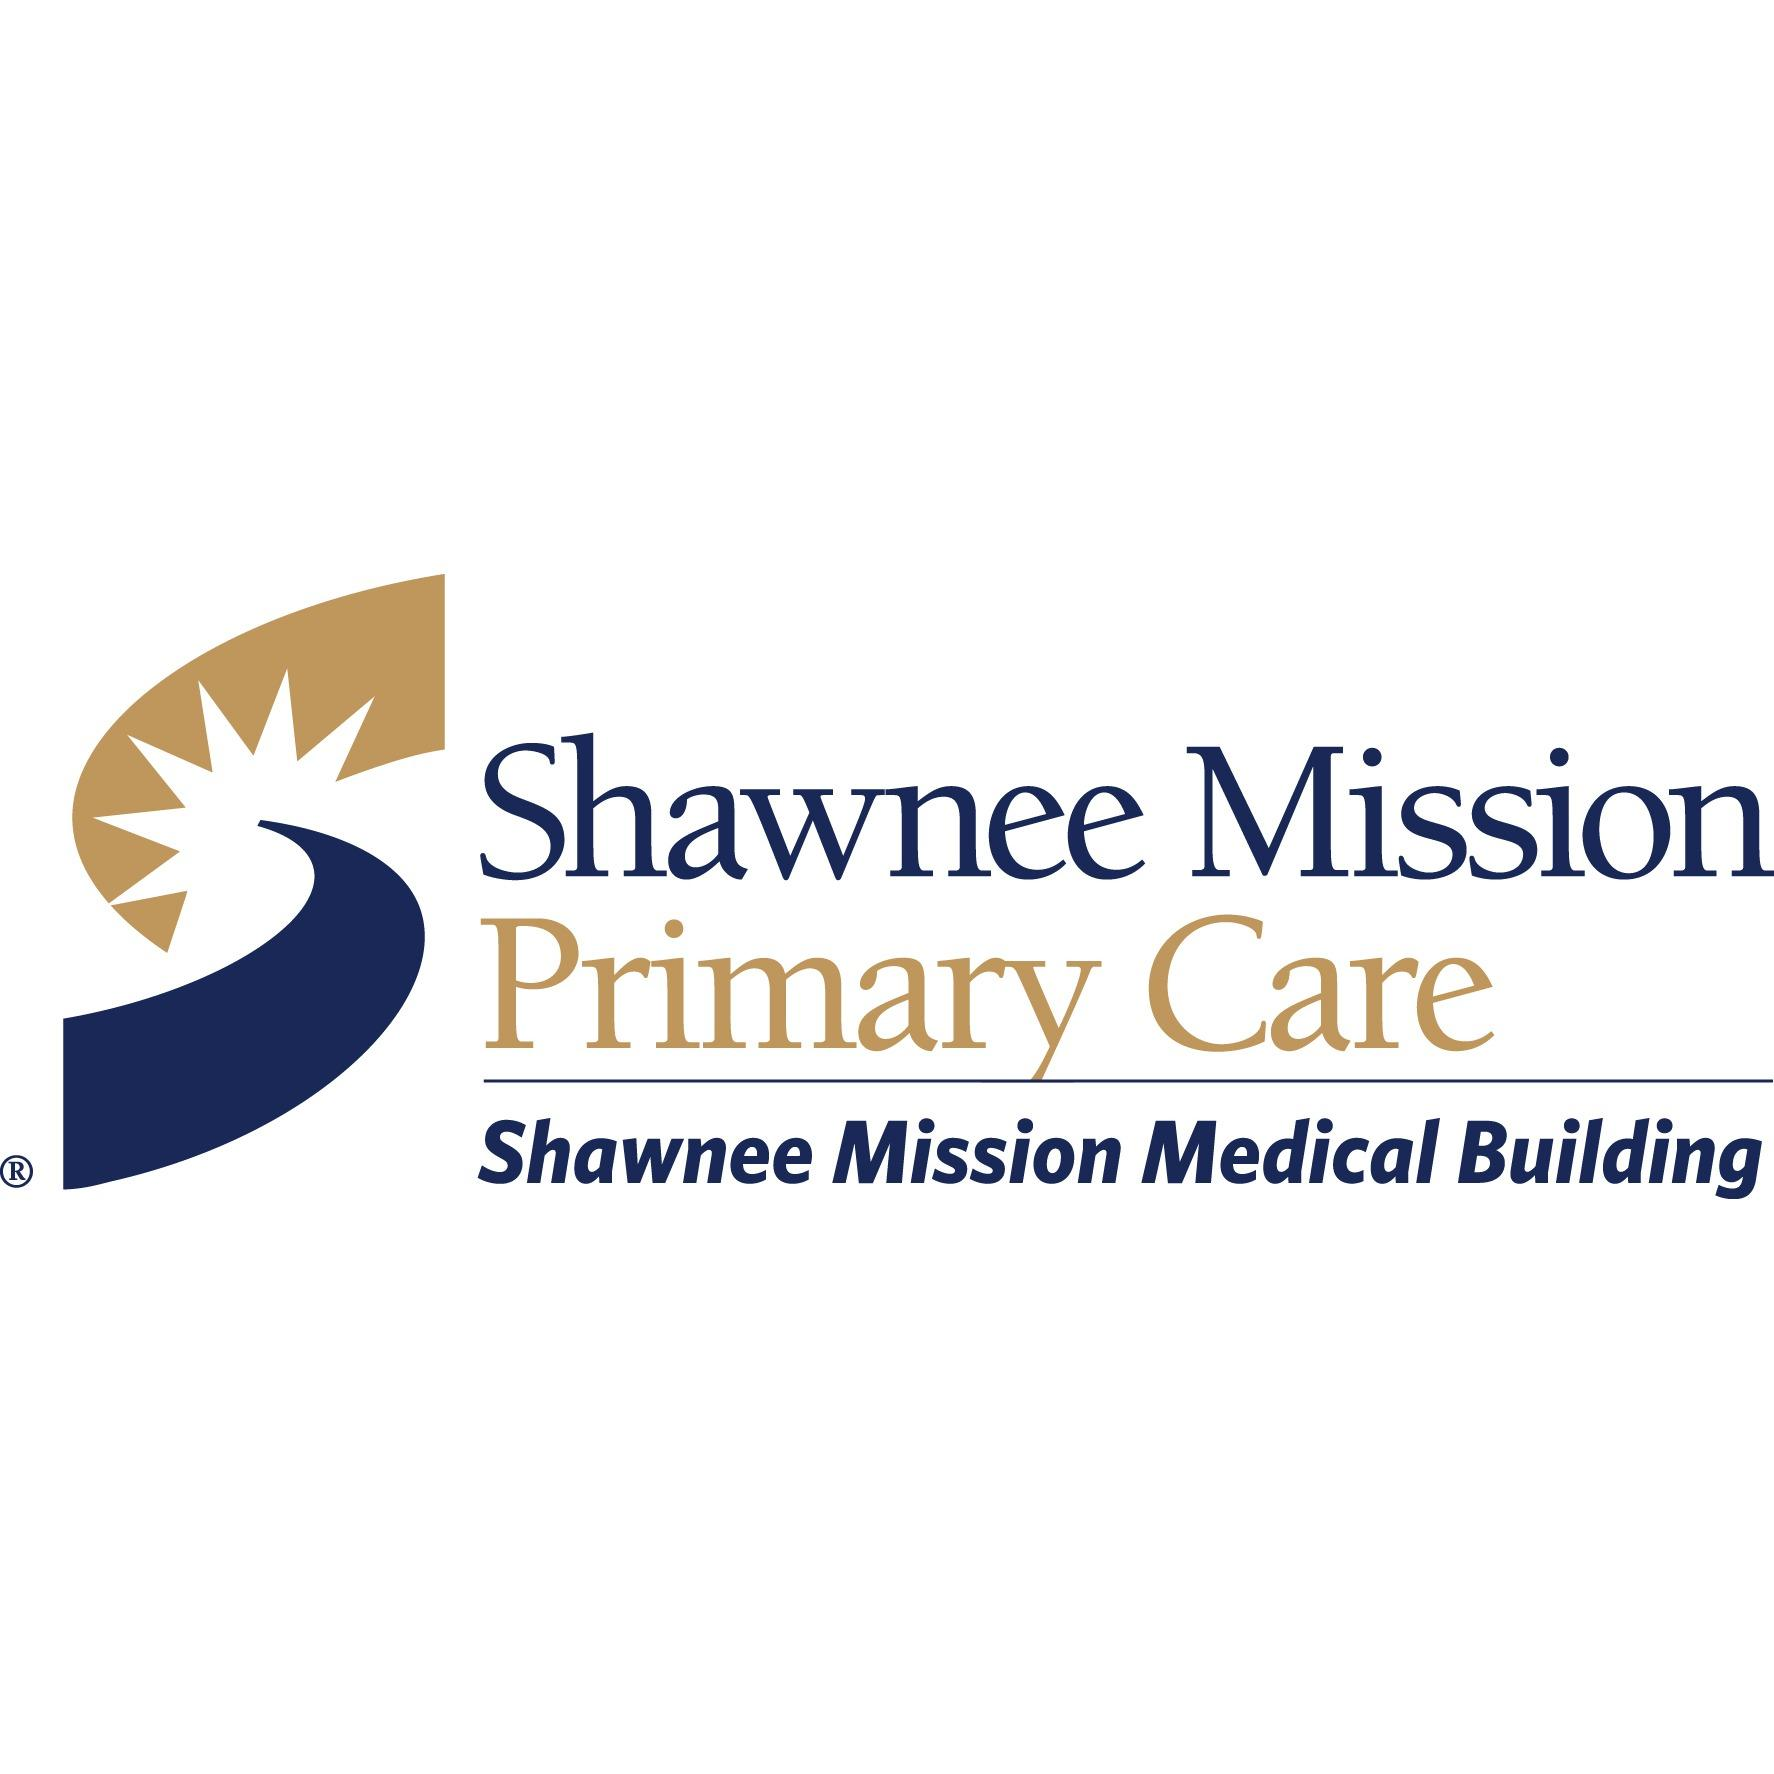 Shawnee Mission Primary Care - Shawnee Mission Medical Building - Shawnee Mission, KS - General or Family Practice Physicians